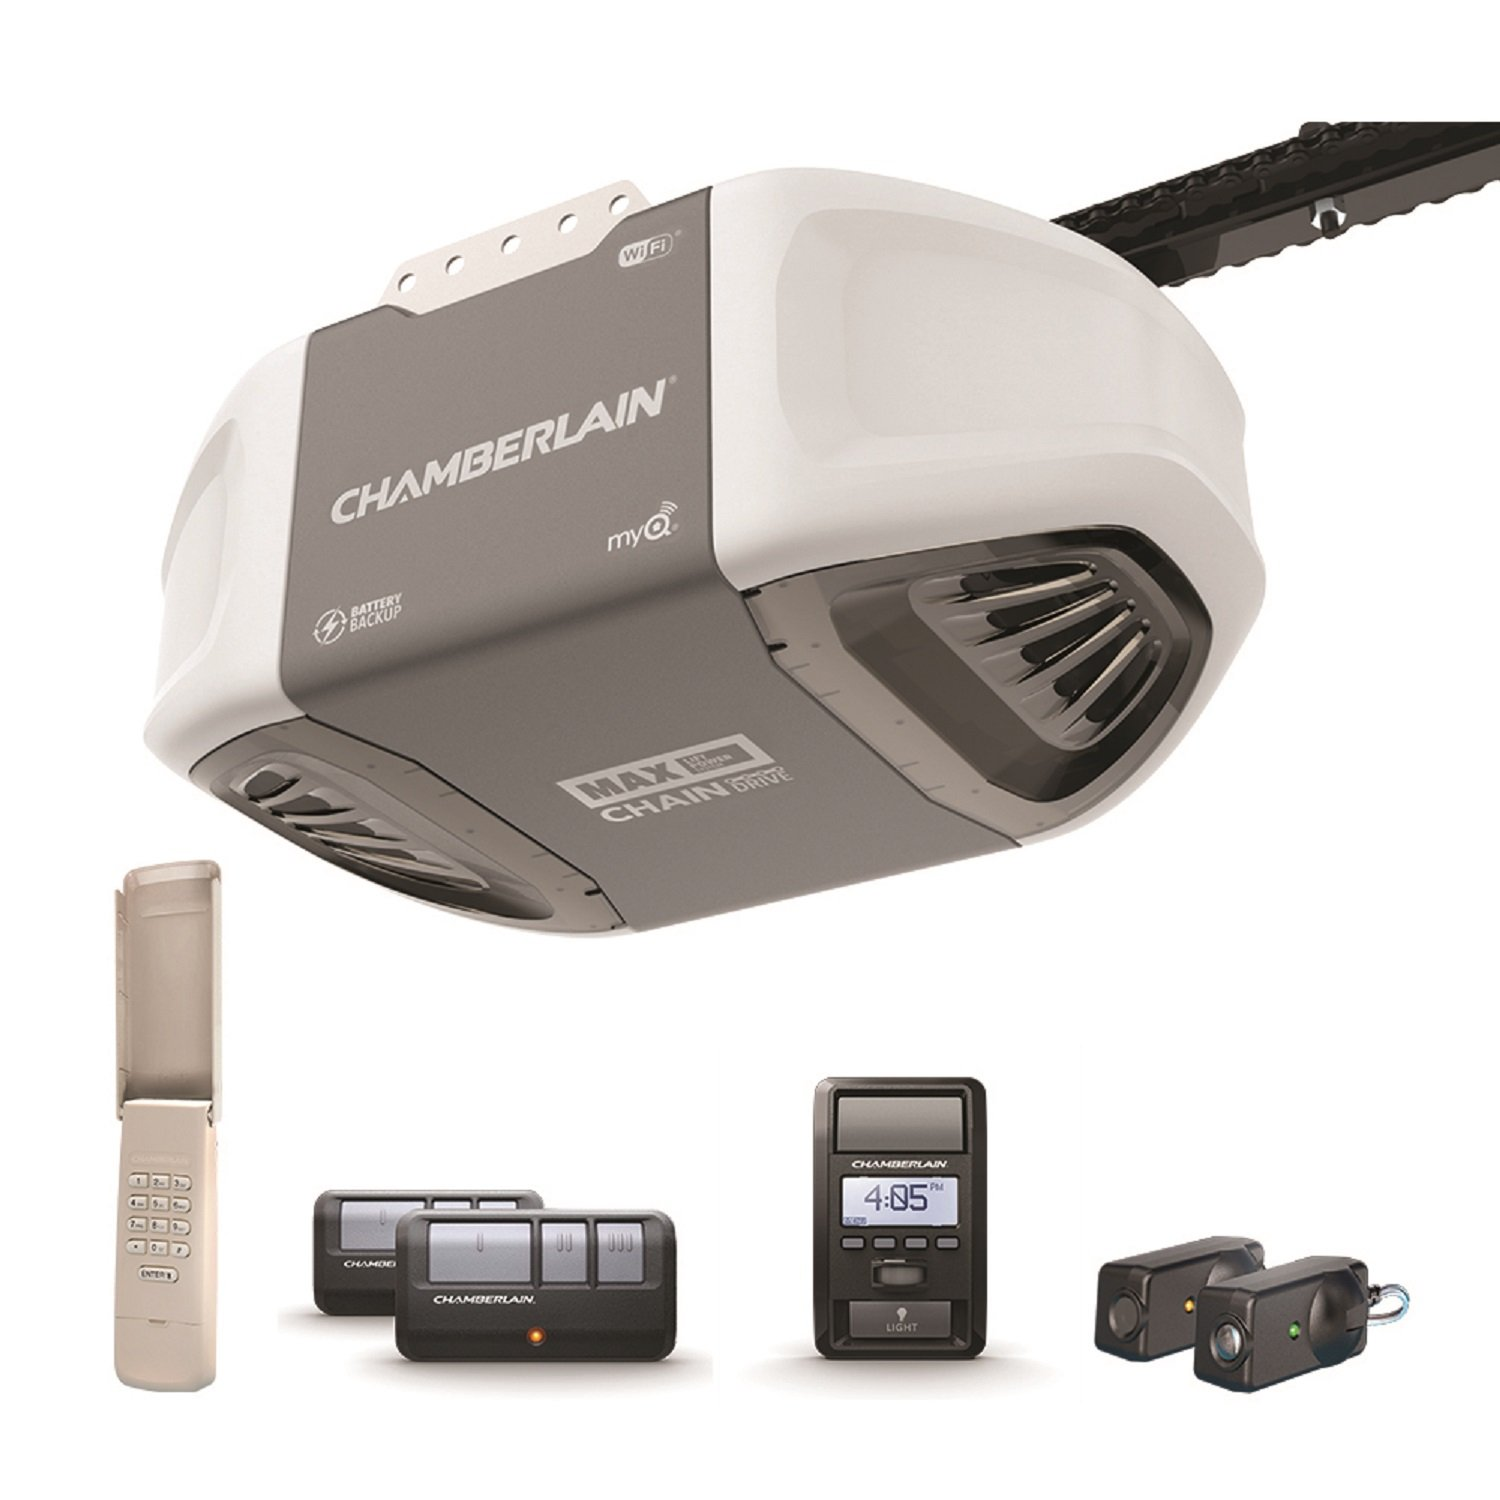 Chamberlain C870 Smartphone-Controlled Durable Chain Drive Garage Door Opener with Battery Backup and Max Lifting Power, Pewter